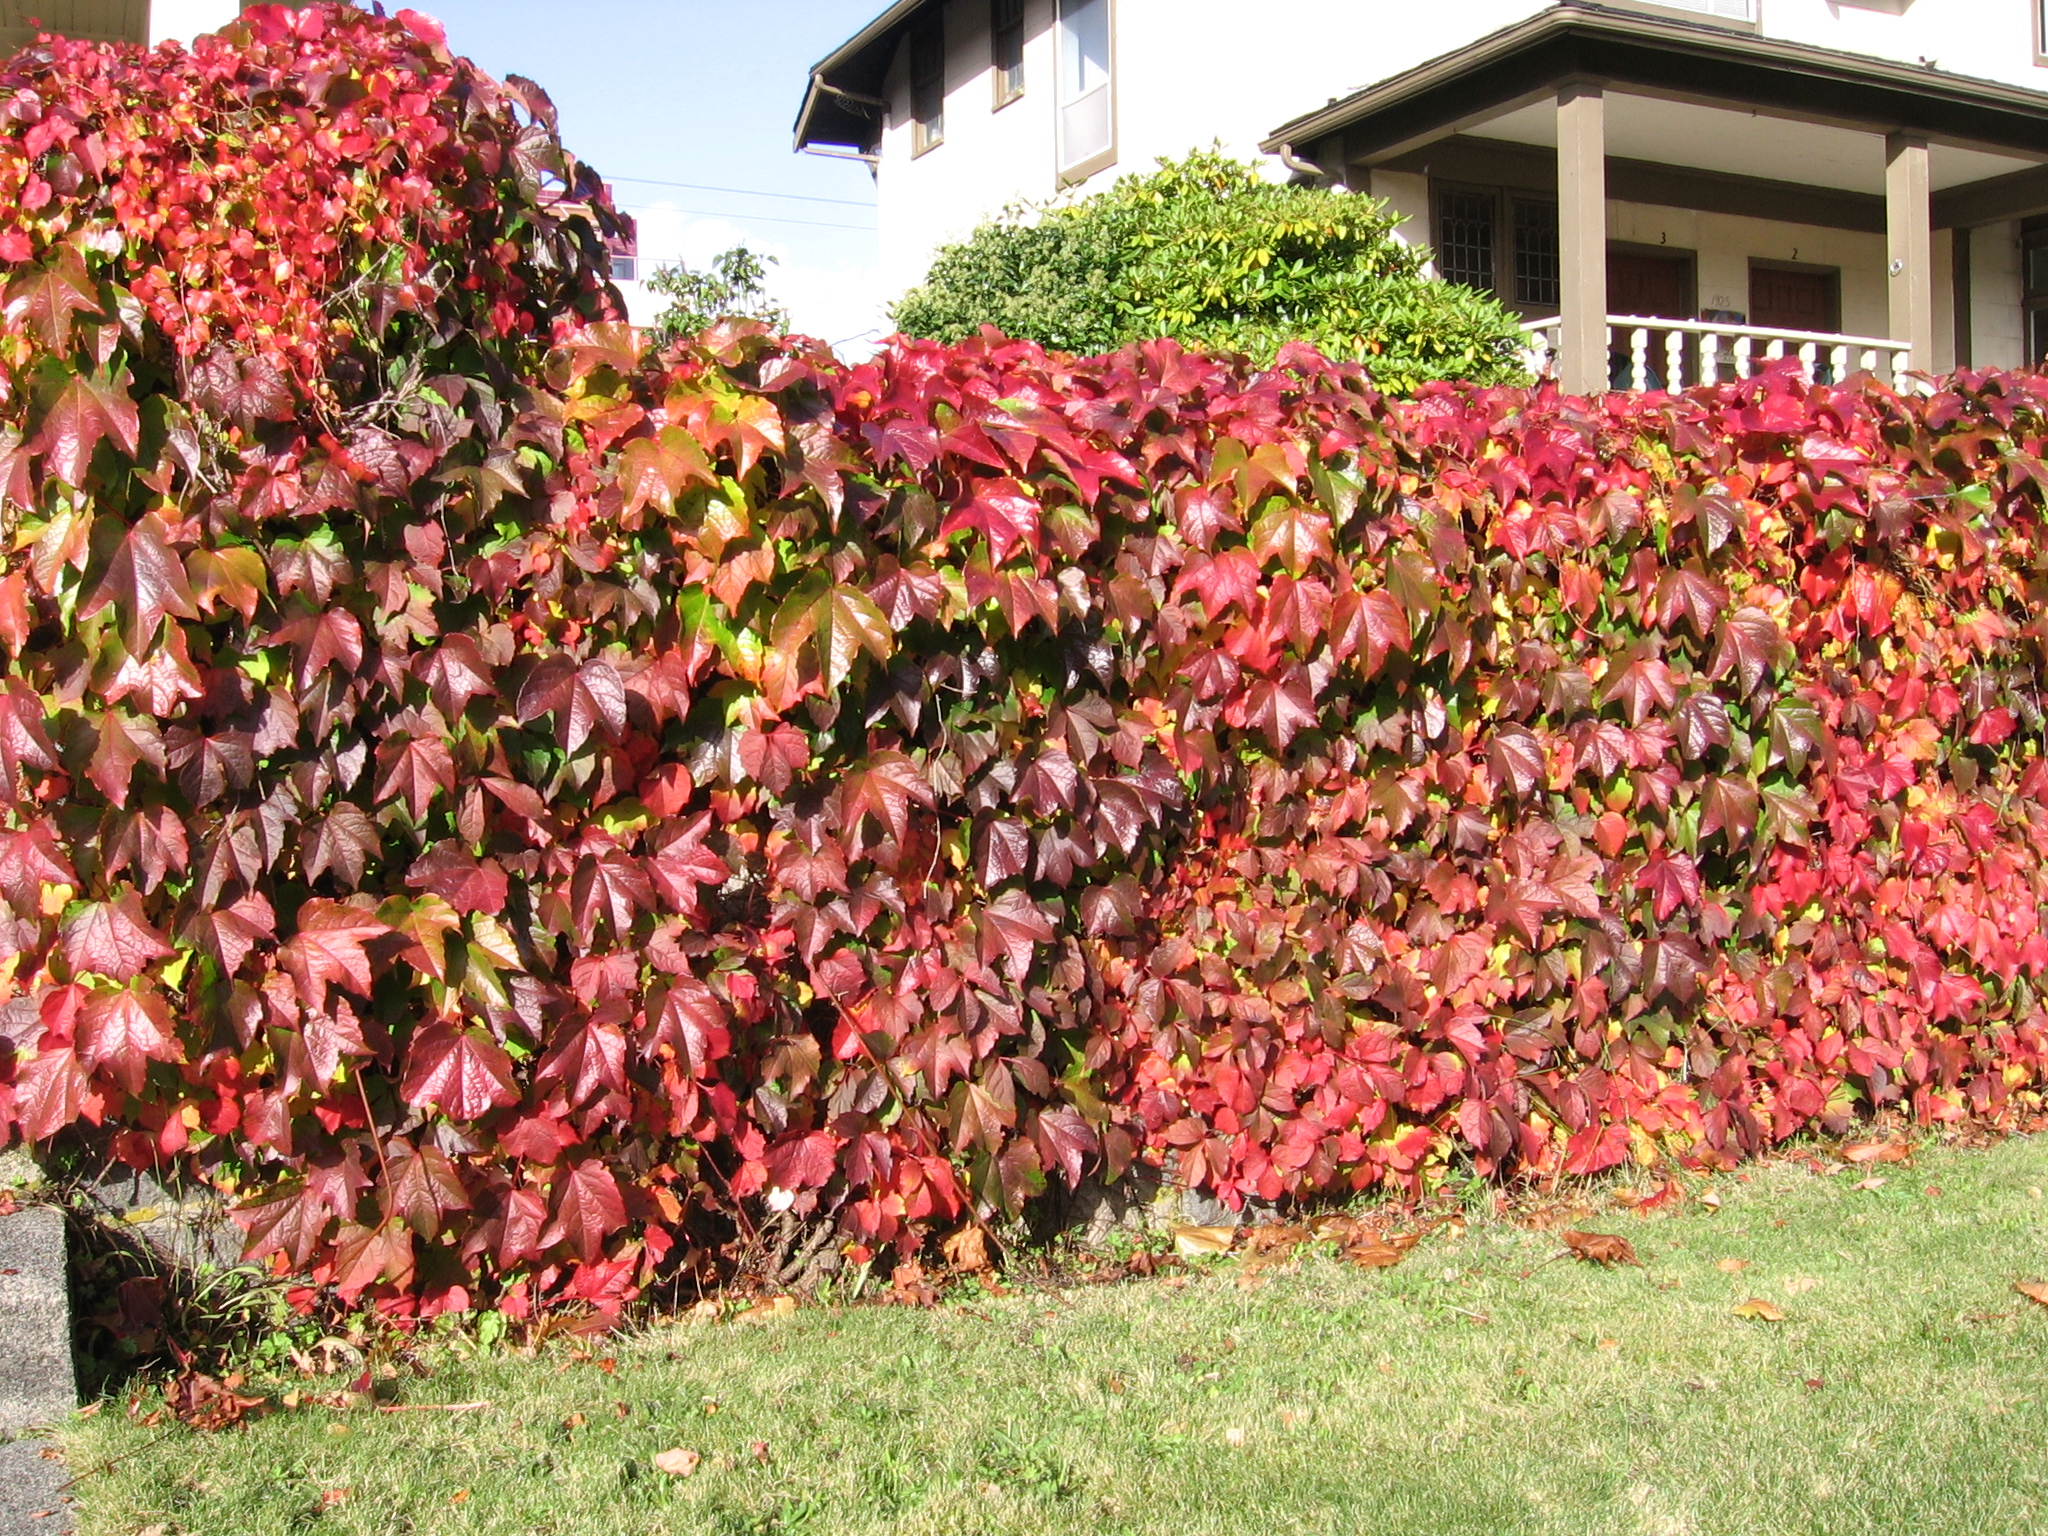 Fence of Virginia Creeper